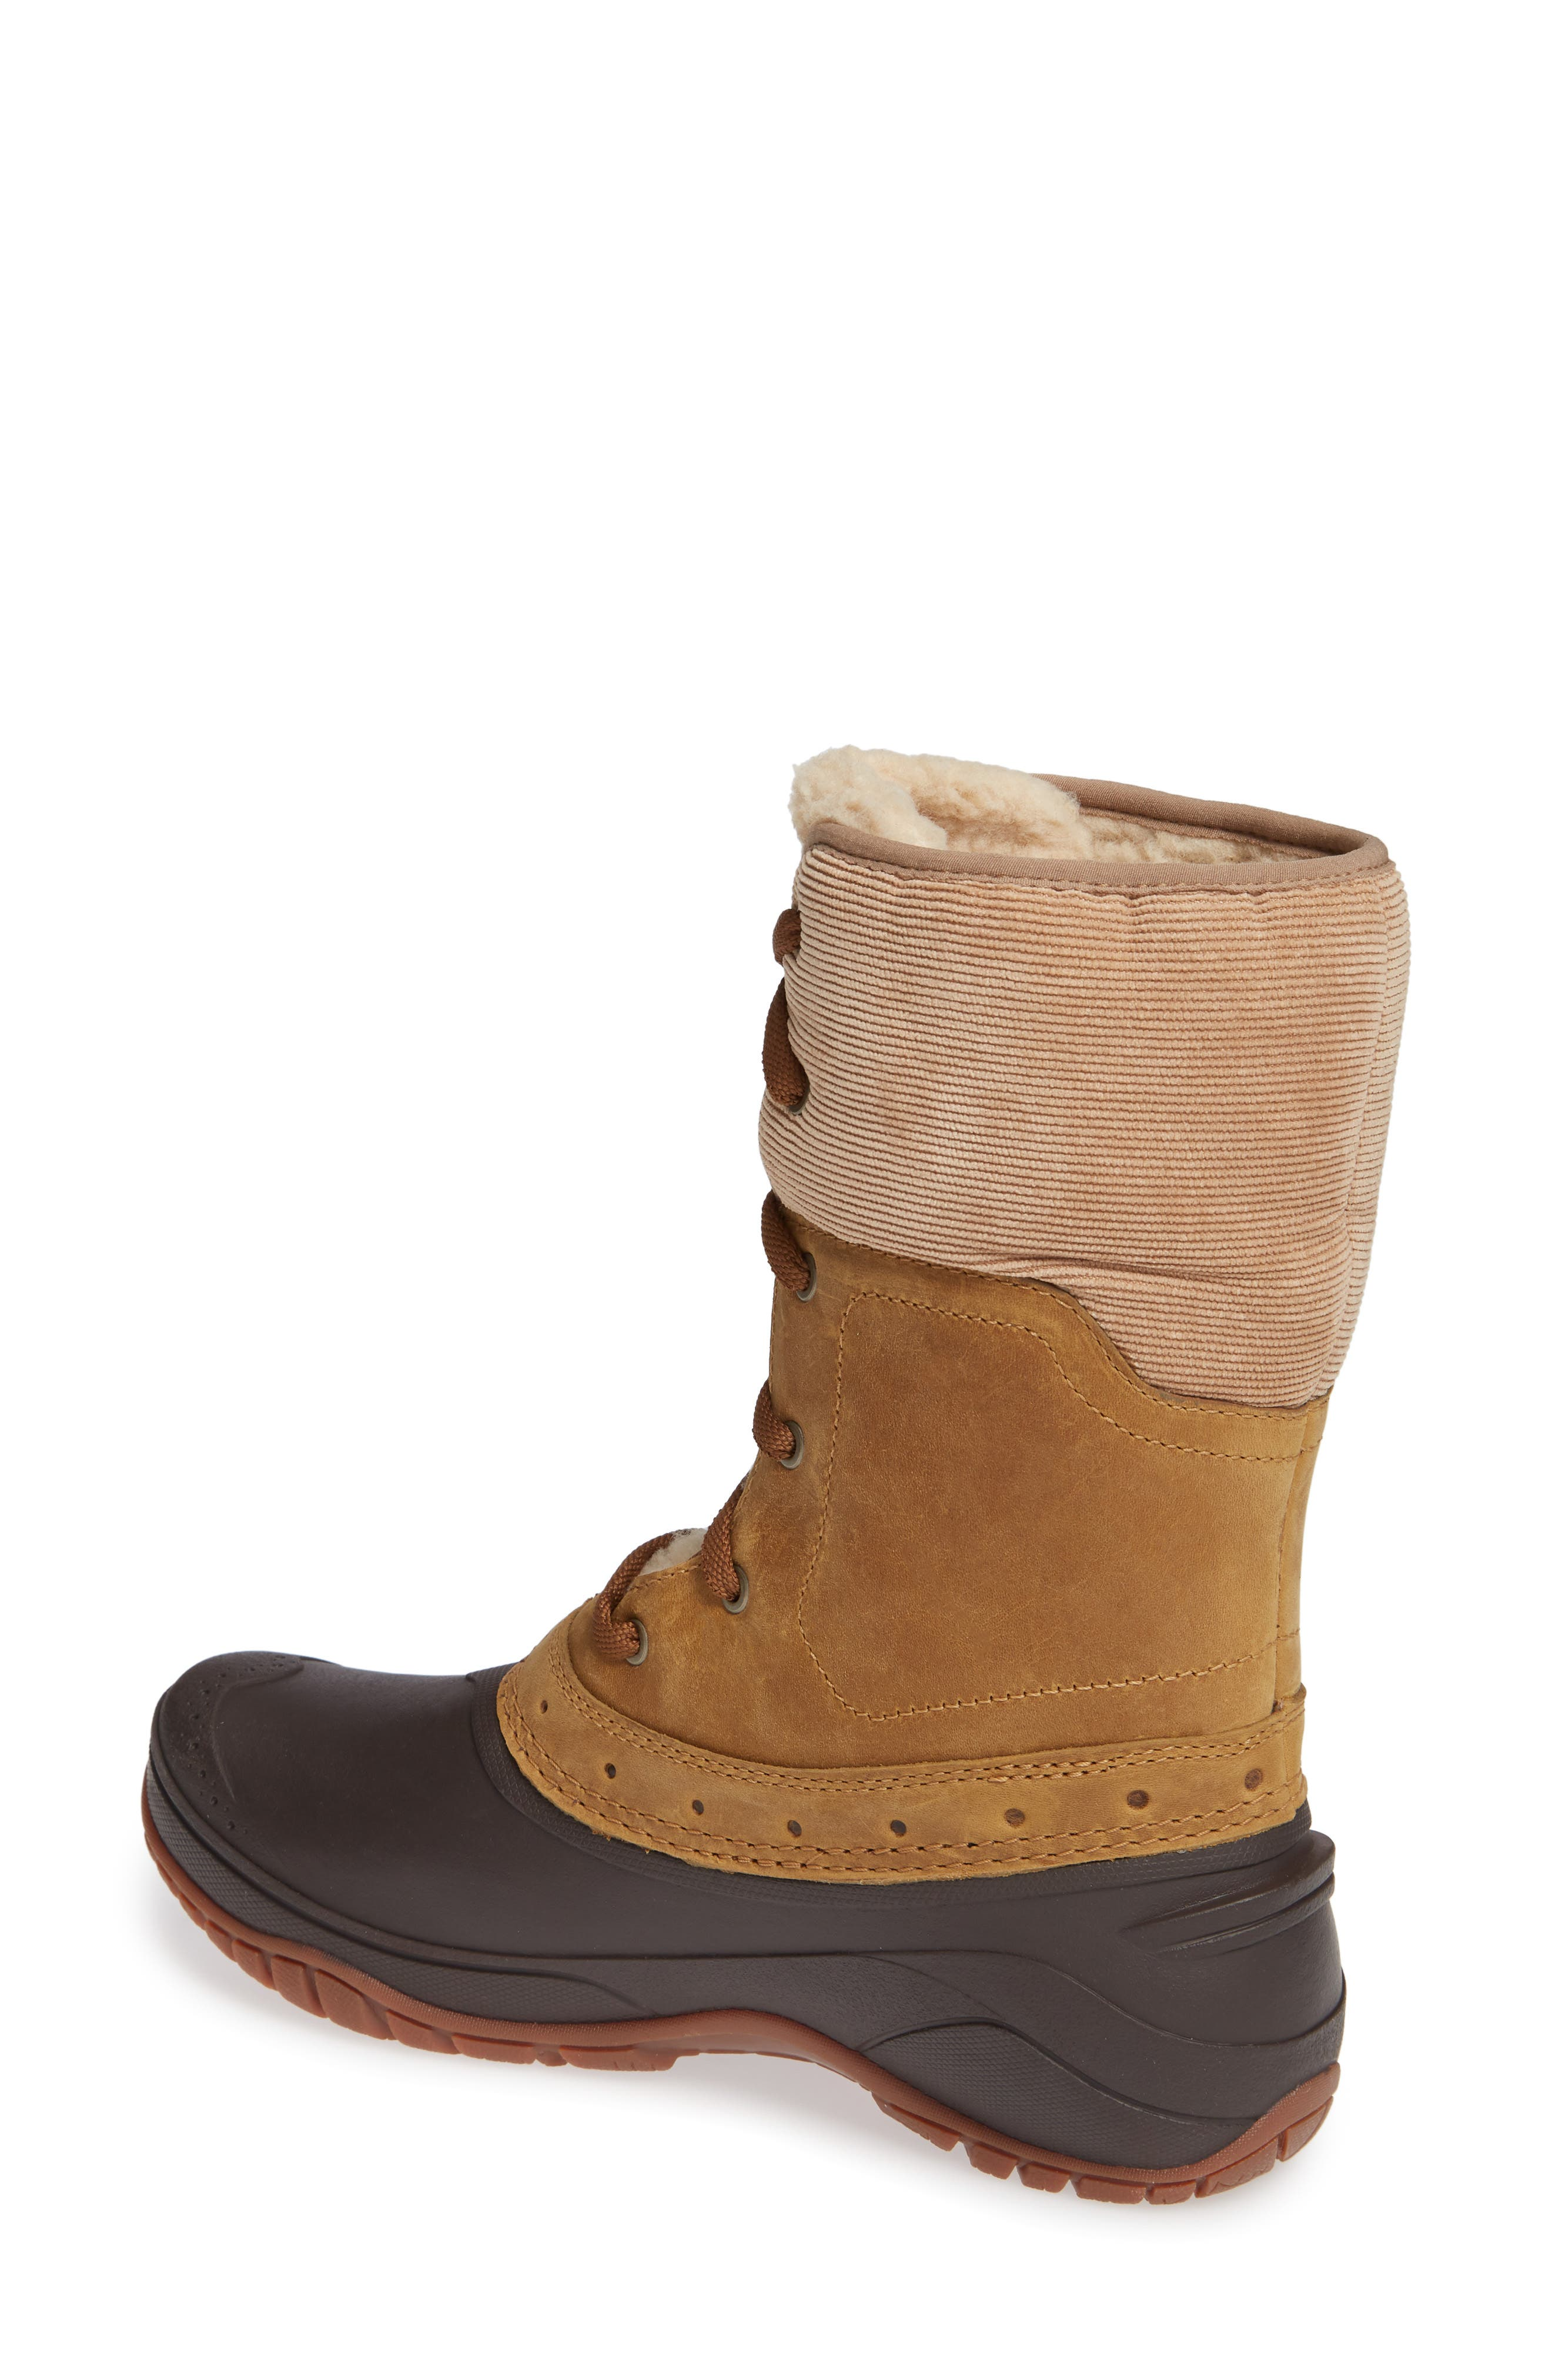 Shellista Roll Cuff Waterproof Insulated Winter Boot,                             Alternate thumbnail 2, color,                             GOLDEN BROWN/ COFFEE BROWN